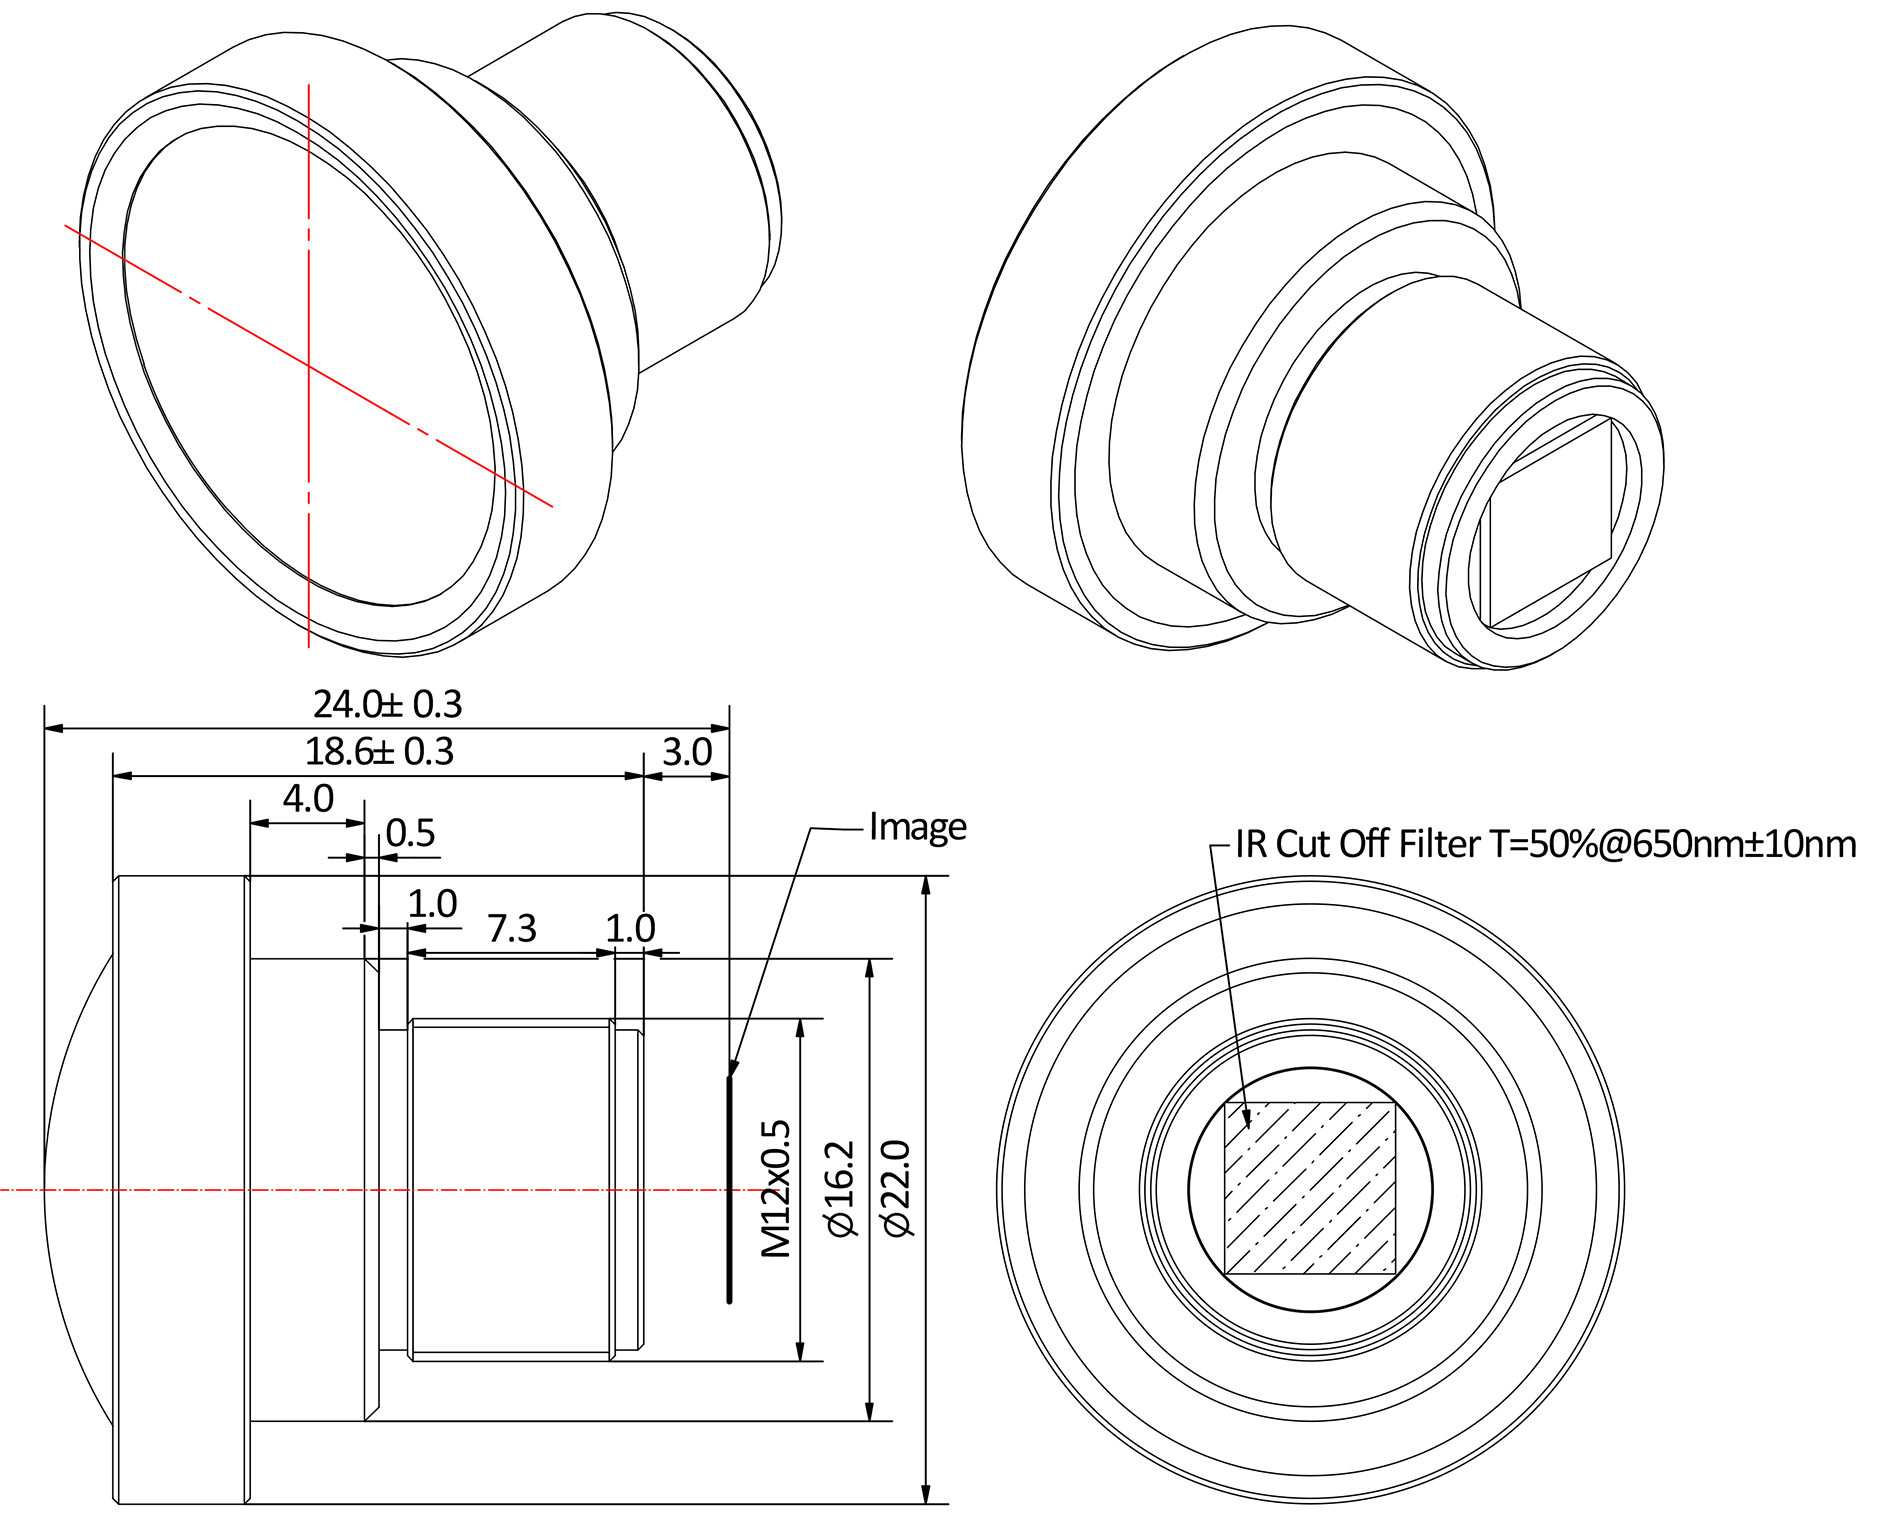 The Mechanical Diagram for a Wide Angle No Distortion F/1.8 Lens